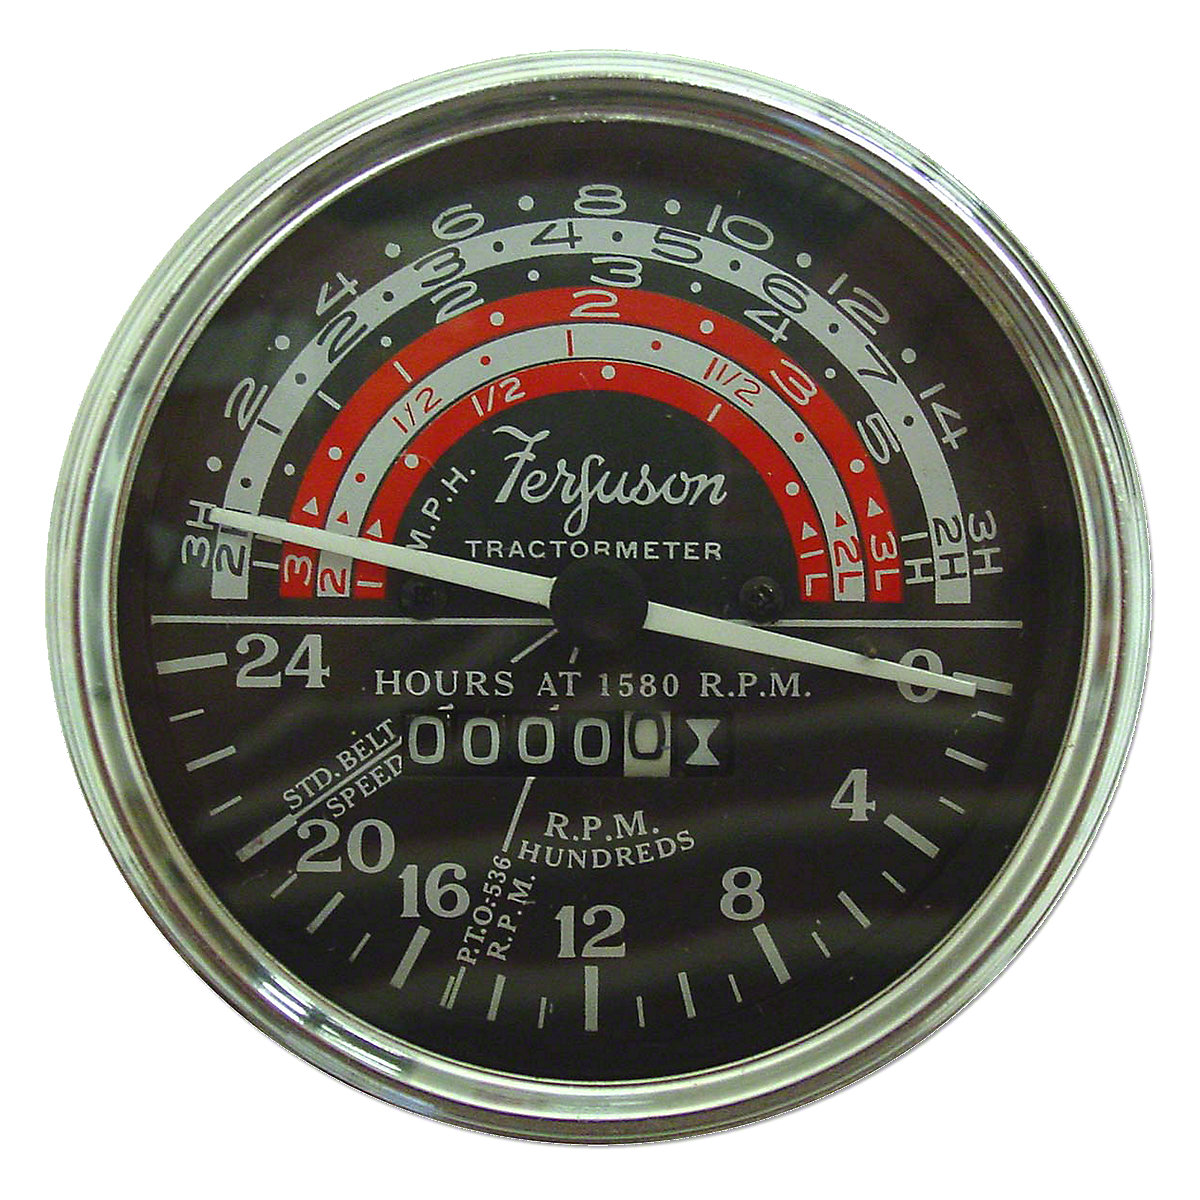 Tachometer For Massey Ferguson: TO35, Massey Harris: 50.